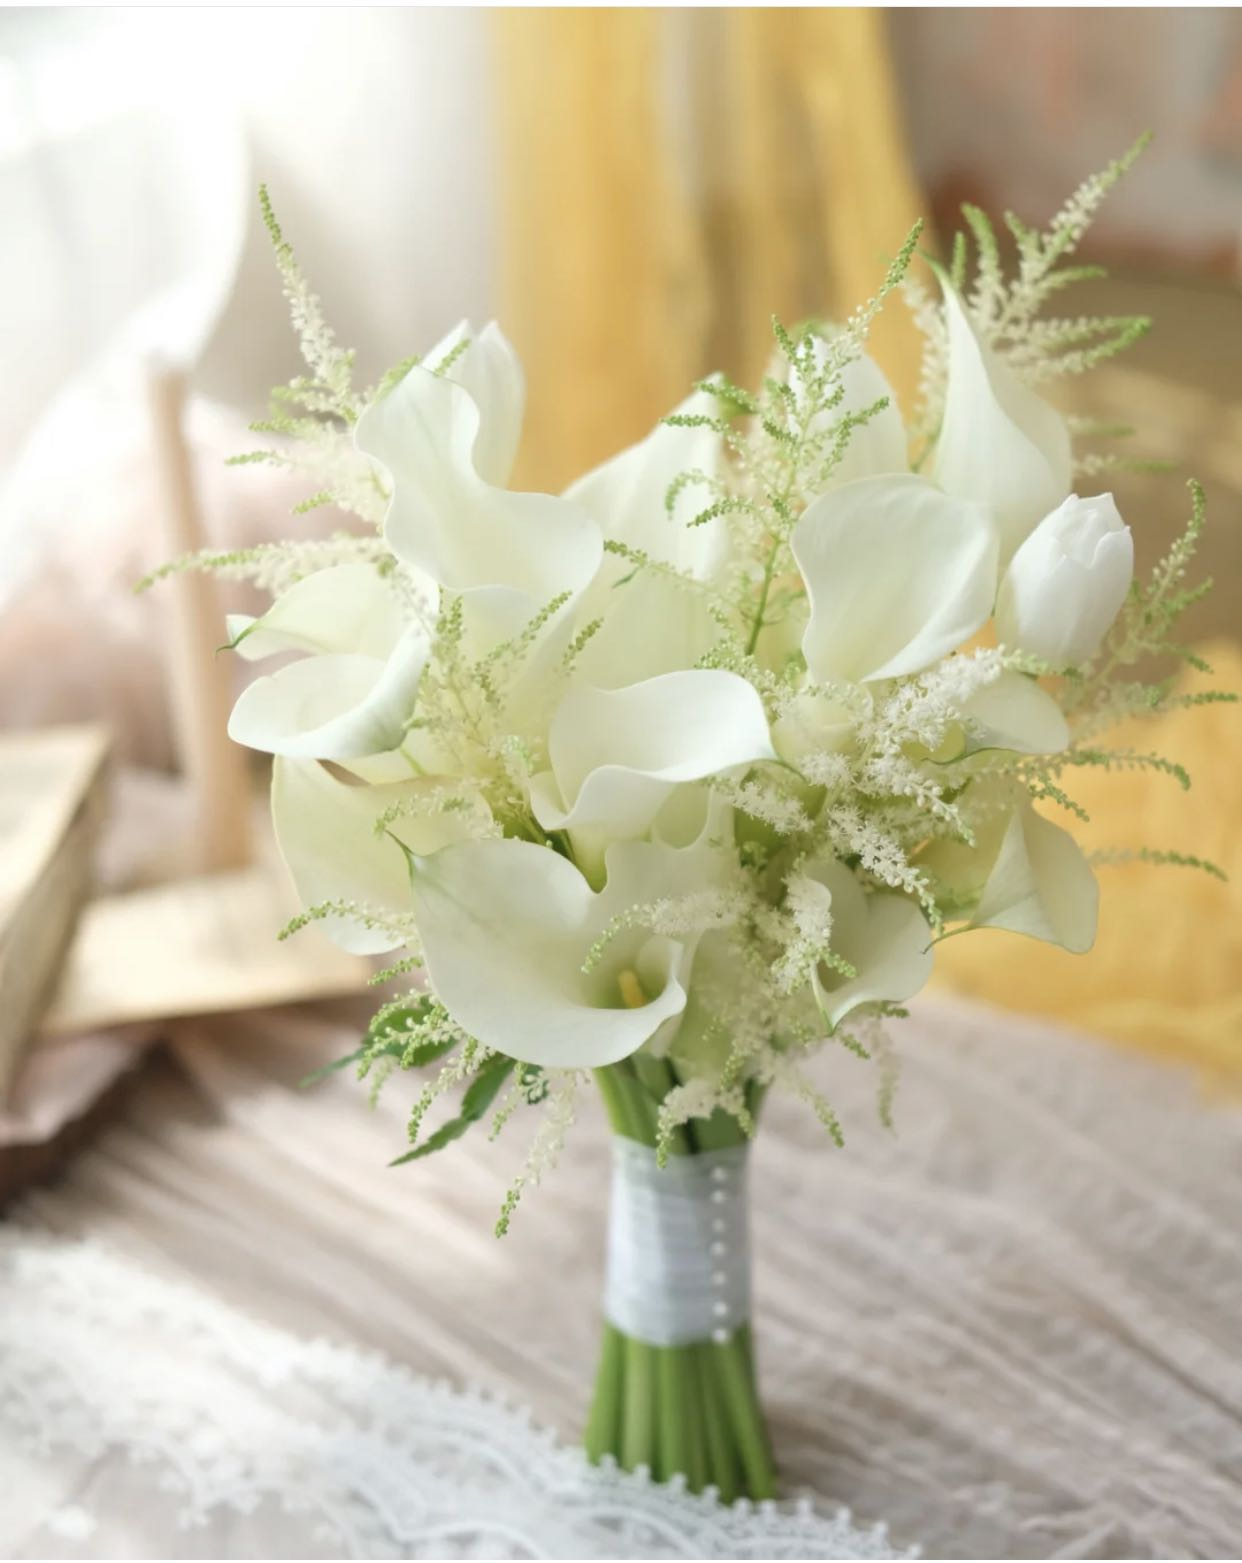 Calla Lily Bouquet Bridal Bouquet Calla Lily Flower Bouquet Flower Delivery Gardening Flowers Bouquets On Carousell